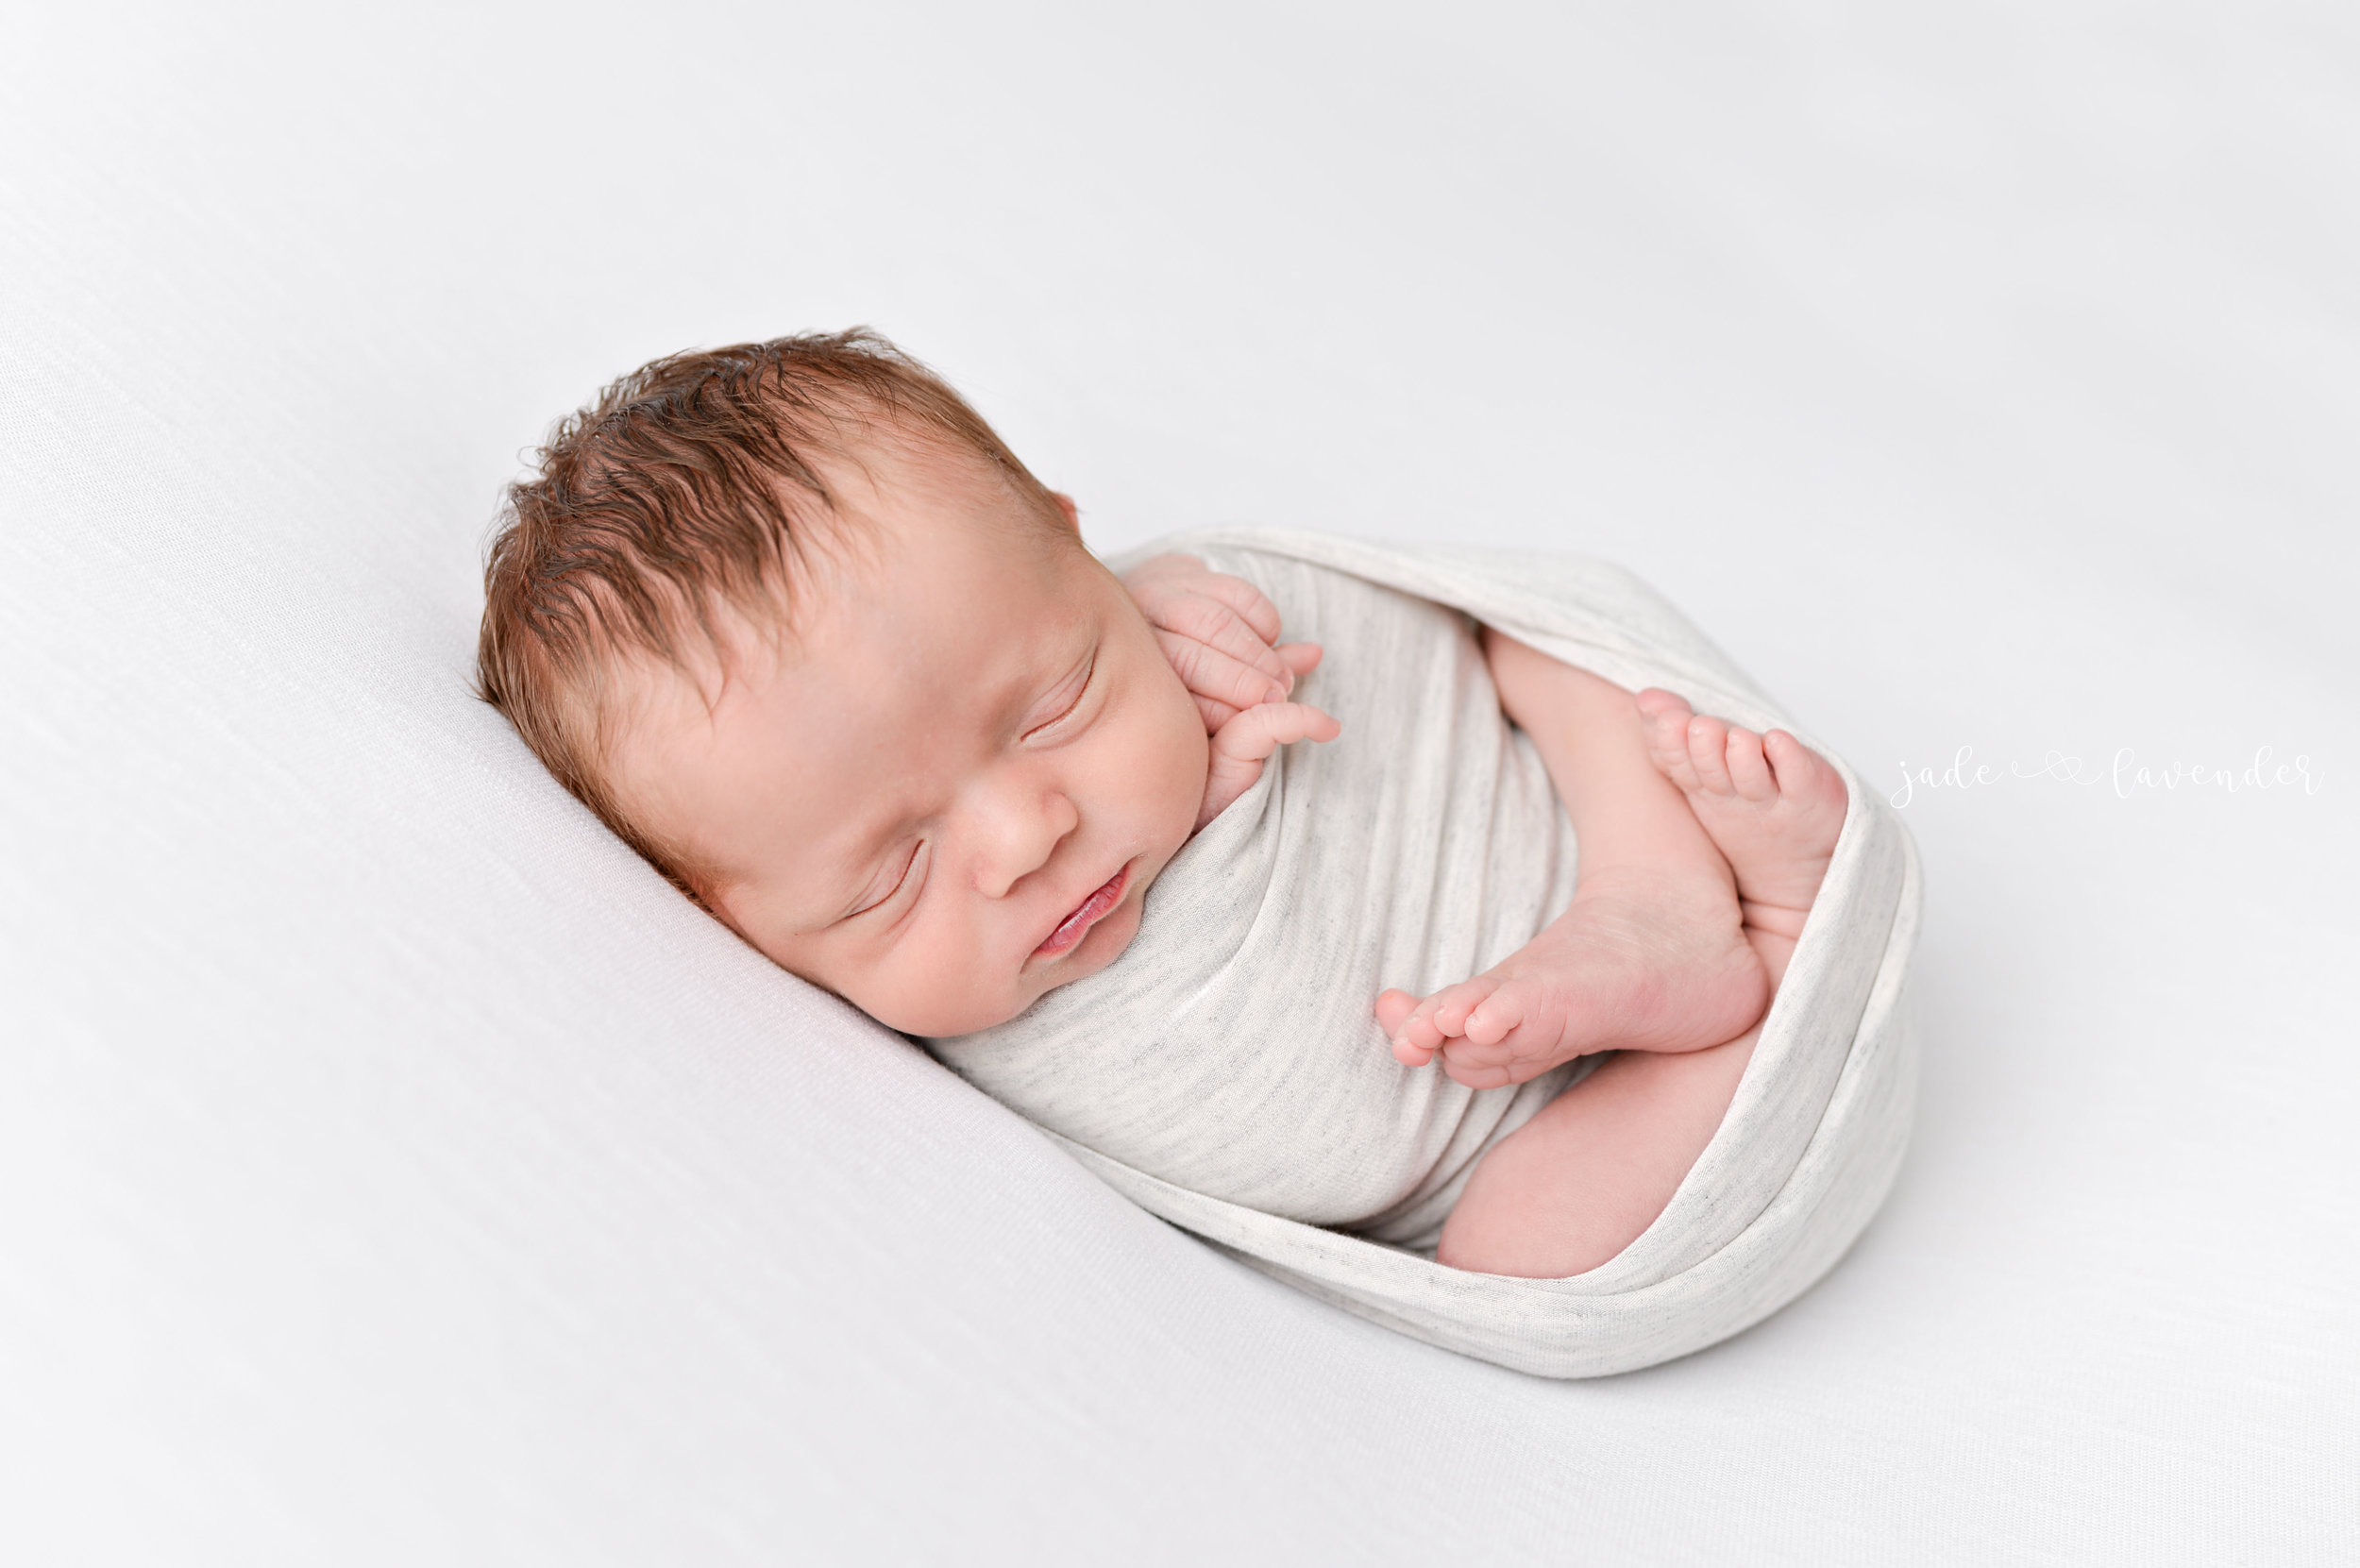 Newborn-boy-photos-baby-photography-infant-images-spokane-washington (3 of 9).jpg